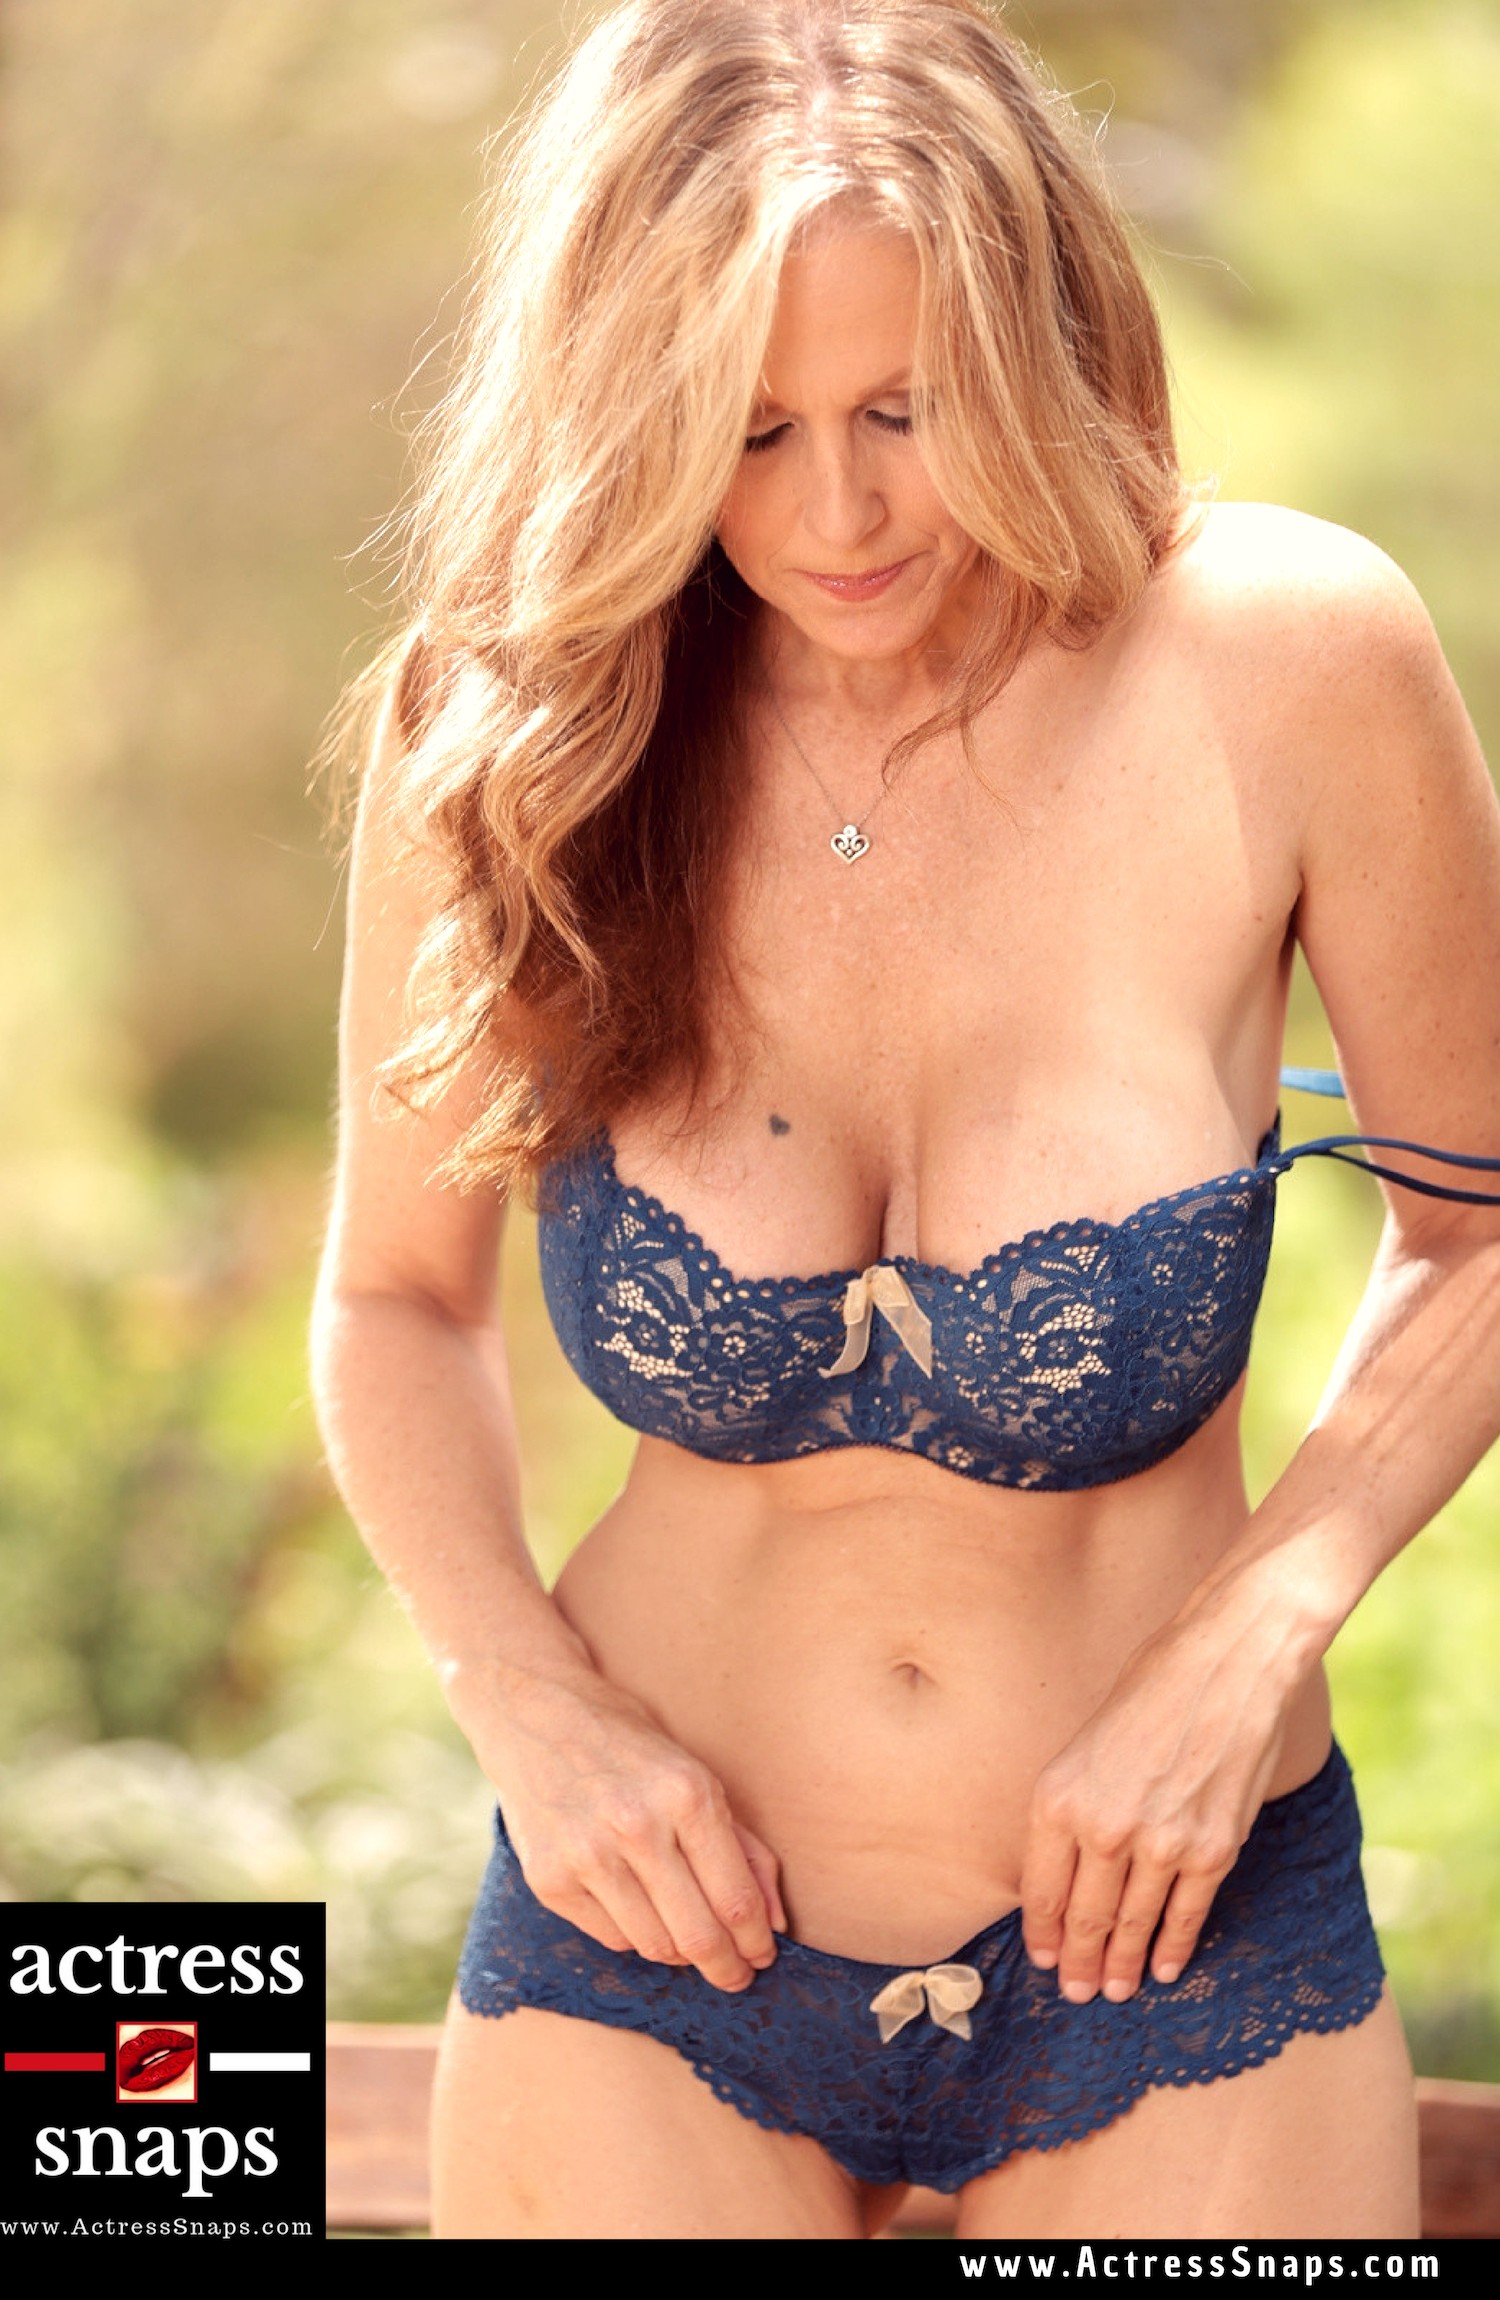 Rare Sexy Photos of Julia Ann - Sexy Actress Pictures | Hot Actress Pictures - ActressSnaps.com